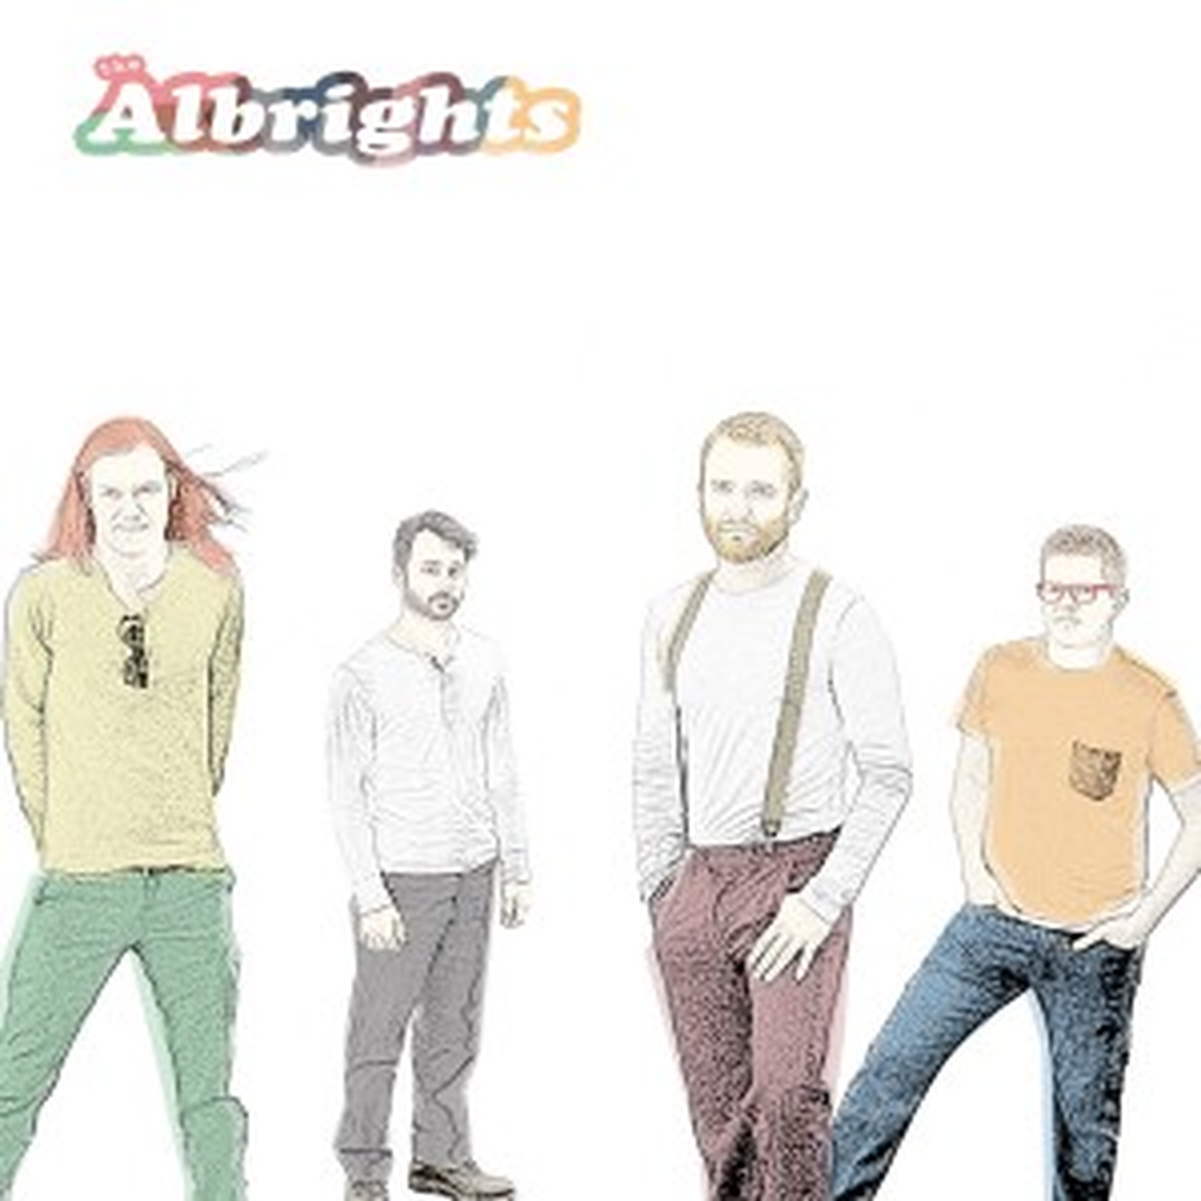 The Albrights